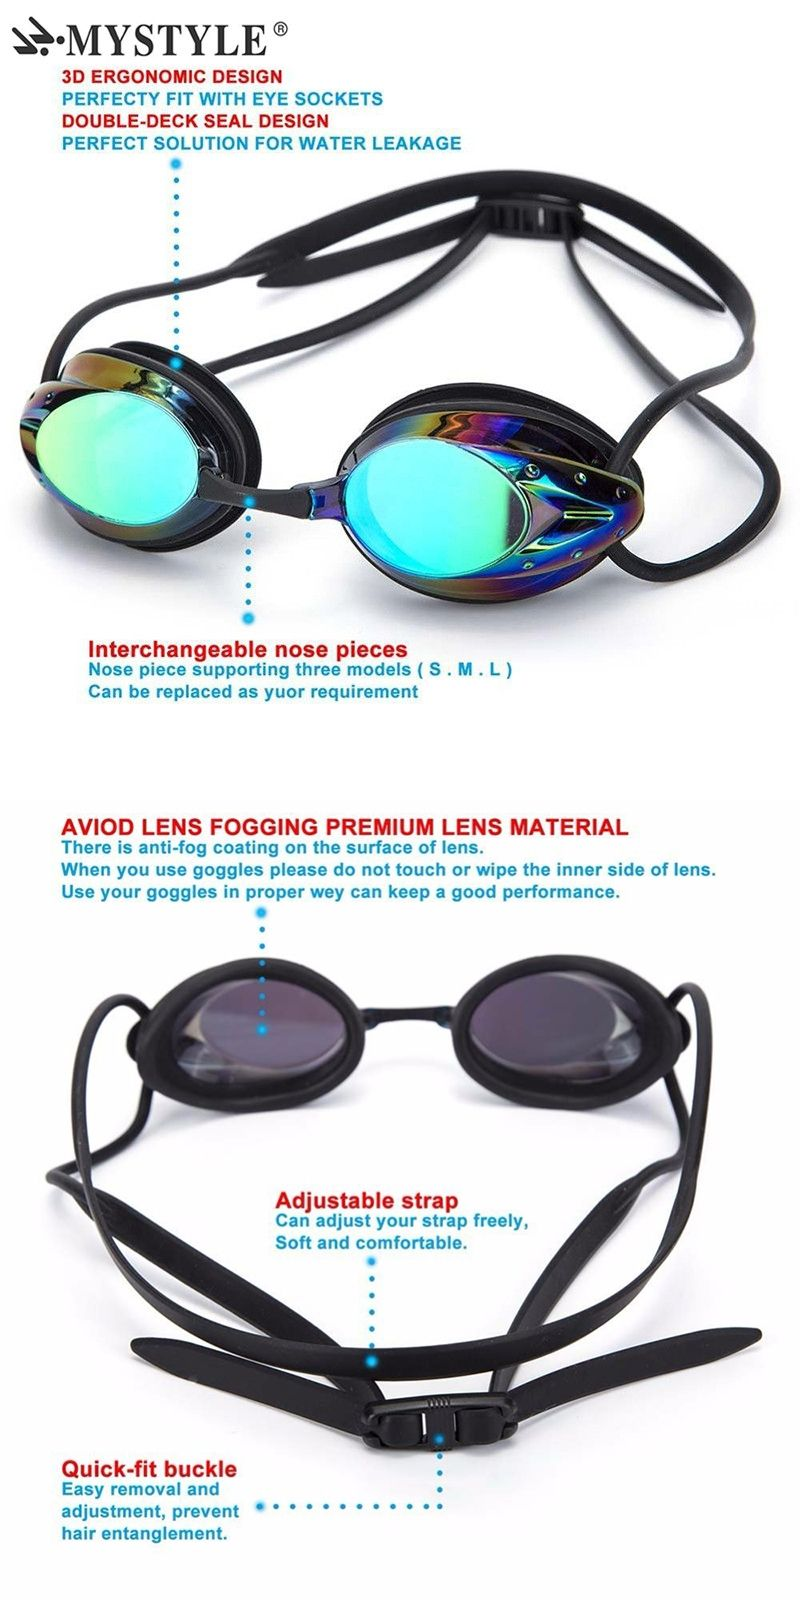 e560209b199 2017 NEW Brand MYSTYLE Swim Goggles Adjustable Electroplating Water Resistant  Anti-fog UV Protection Swimming